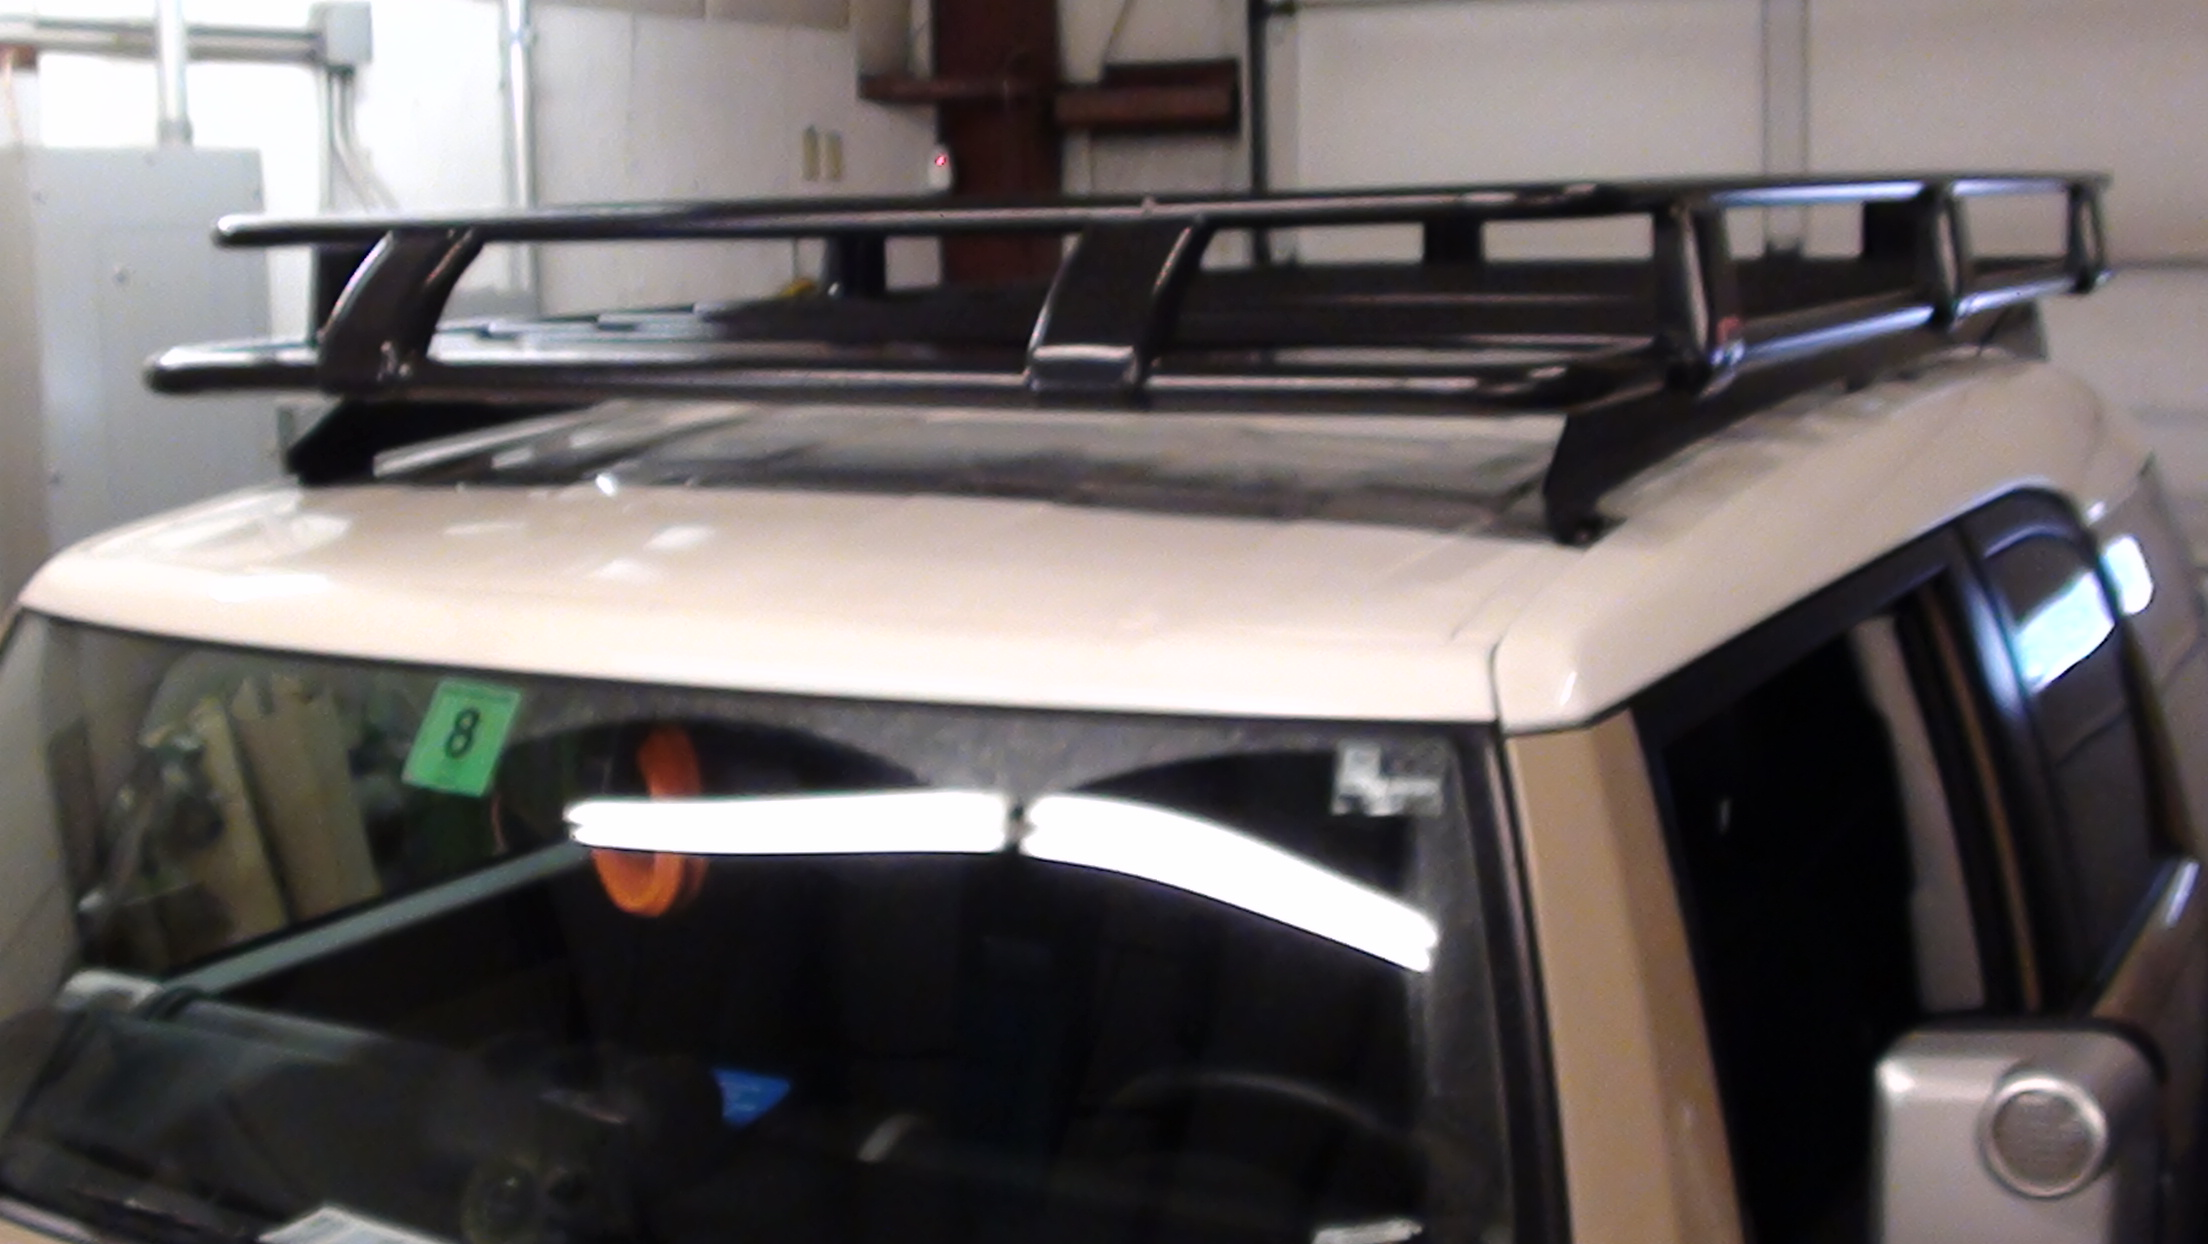 FJ Cruiser ARB Roof Rack